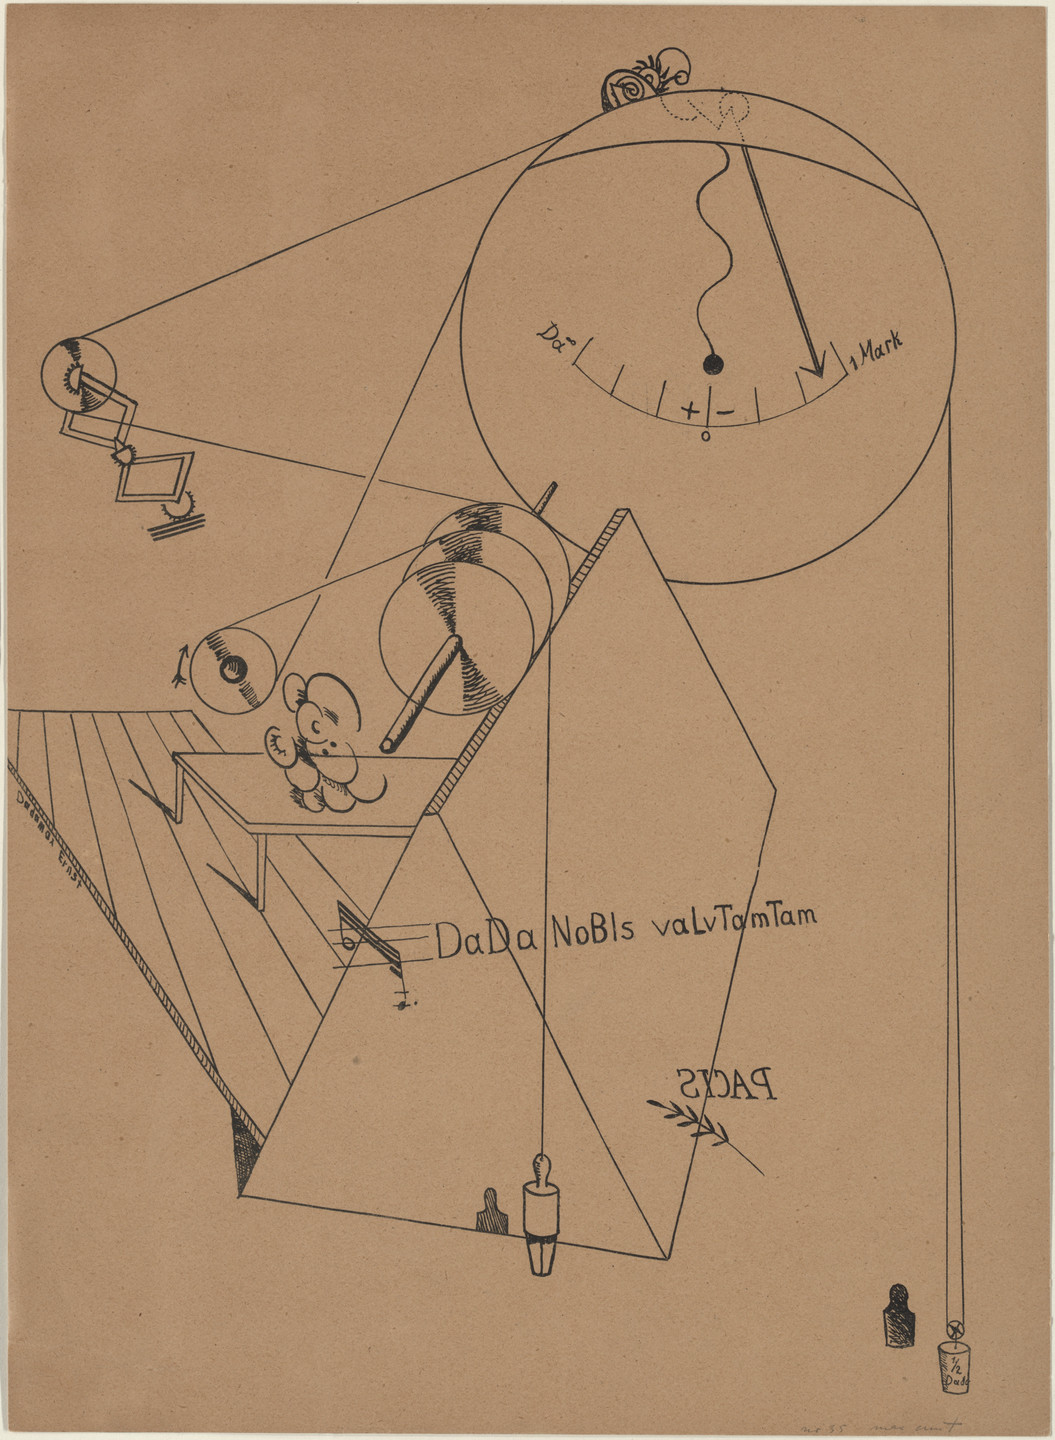 Max Ernst. Plate VIII from Let There Be Fashion, Down With Art (Fiat modes pereat ars). 1920